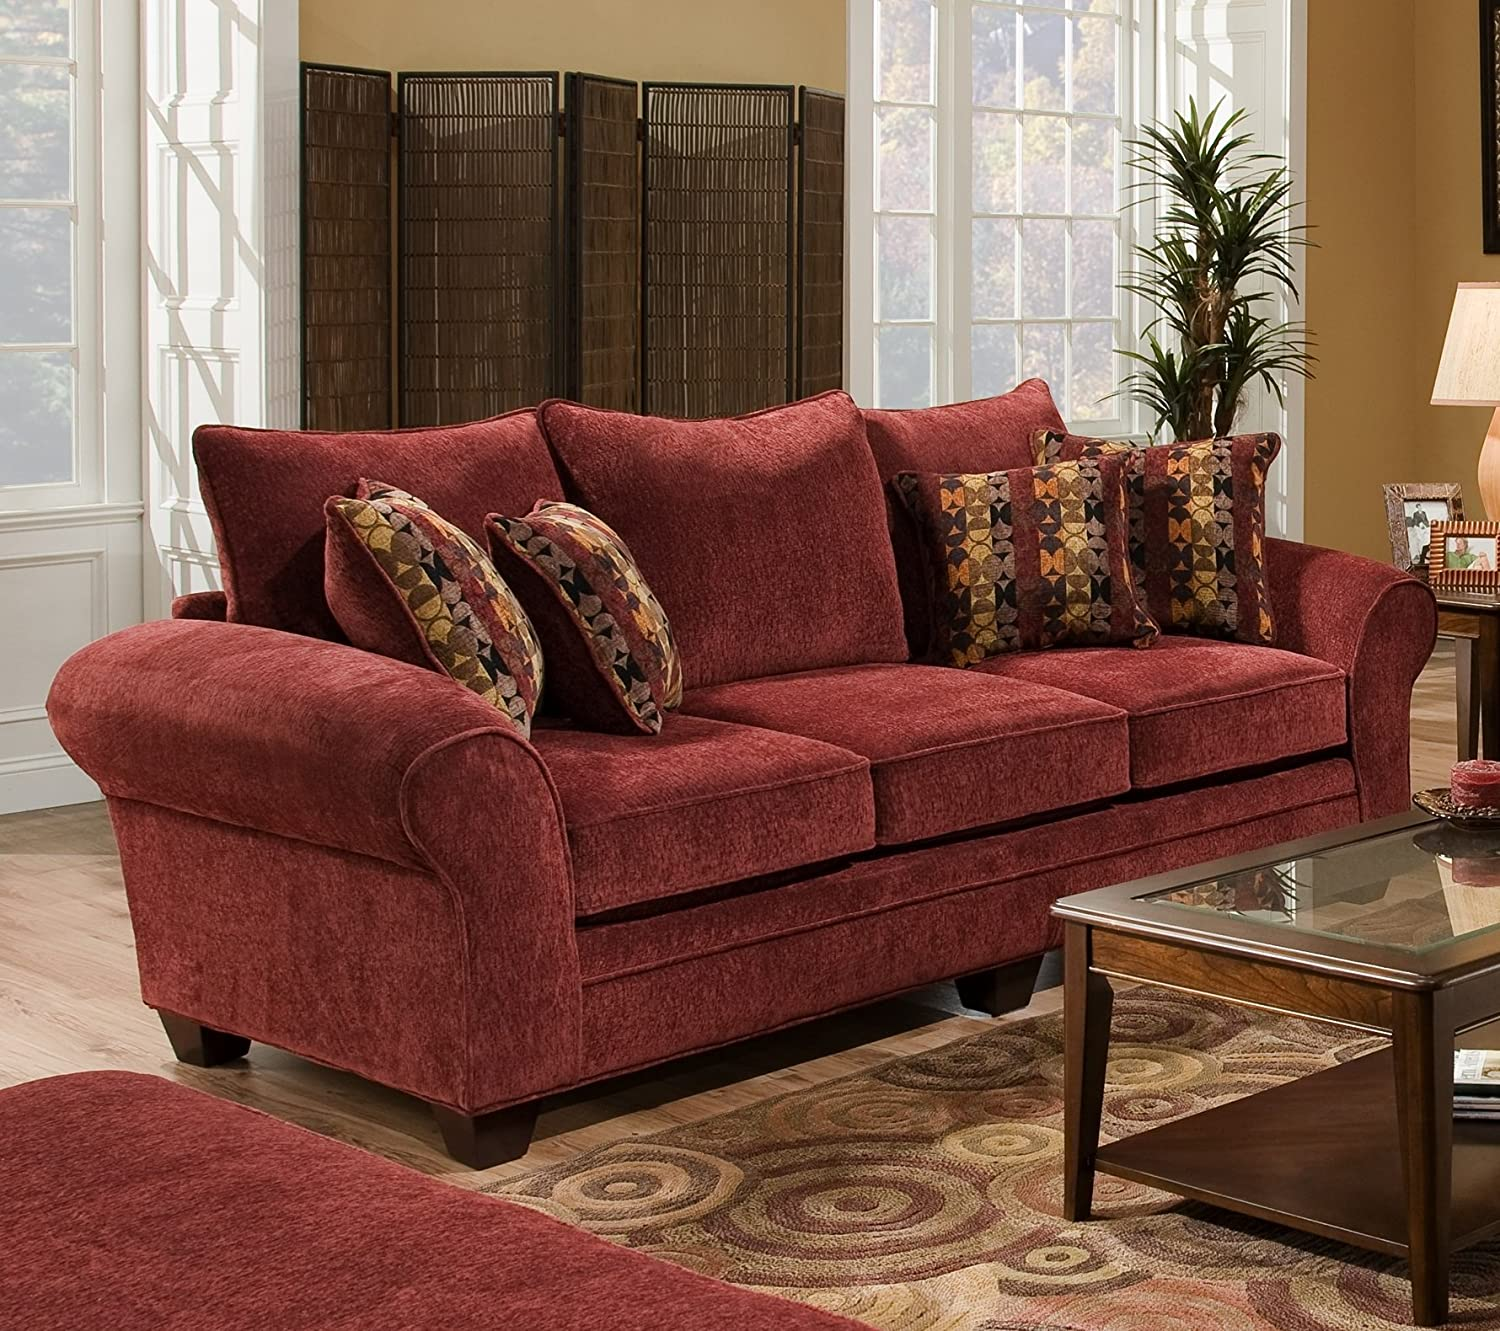 Amazon Chelsea Home Furniture Clearlake Sofa Waverly Godiva